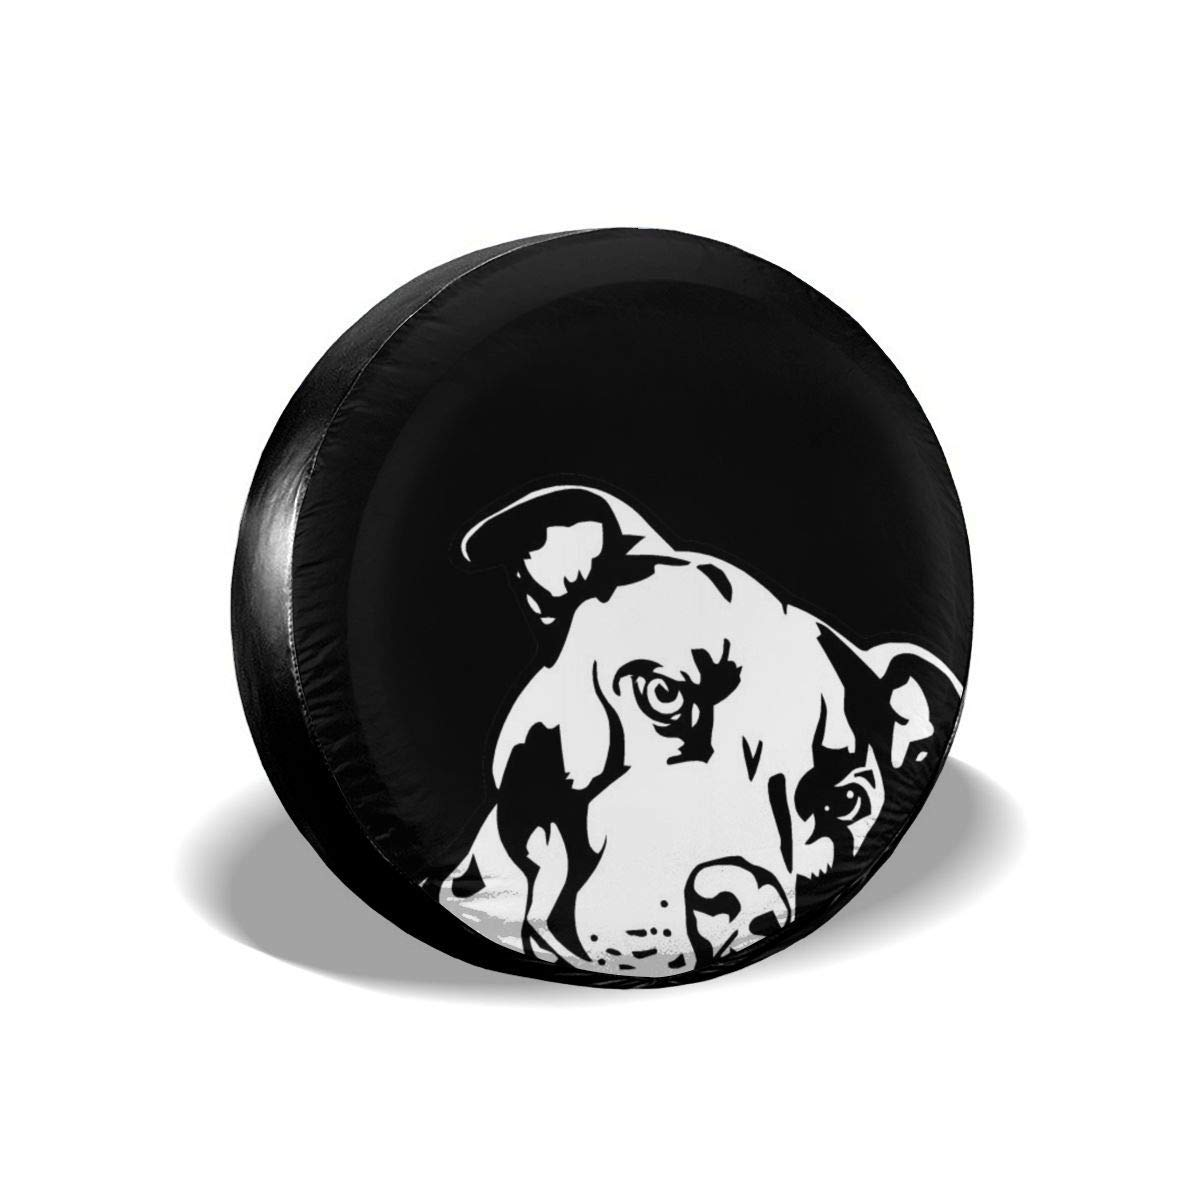 Kejbr Spare Wheel Cover Black and White Dog Drawing Universal Fit Spare Tire Cover Waterproof Keeps Dirt Rain and Sun Away from Your Spare Tire